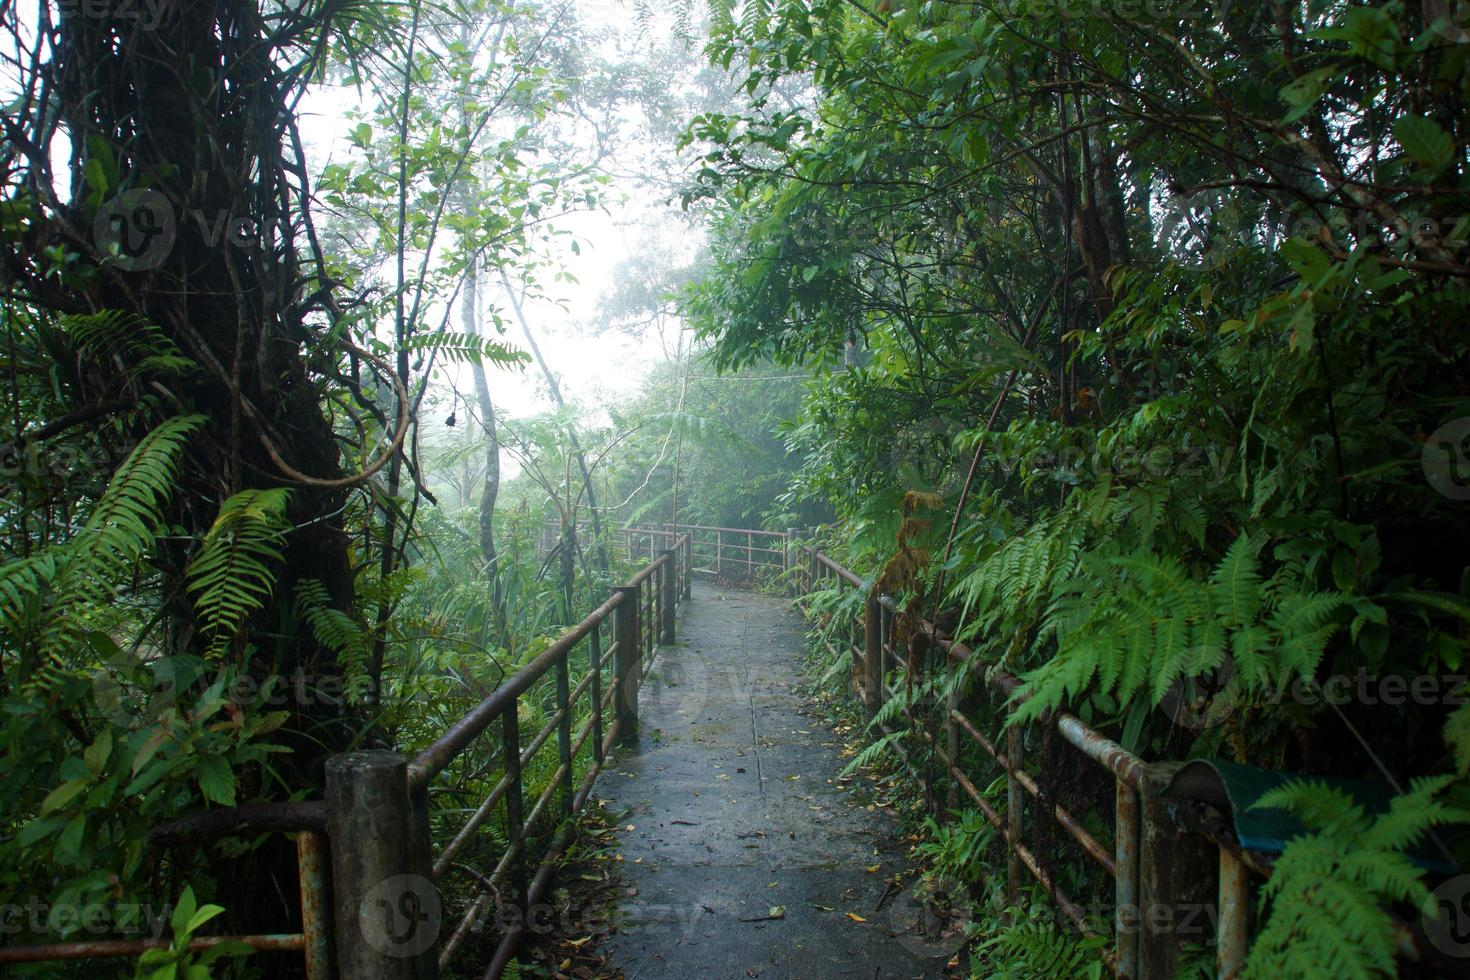 Nature walk in the rain forest and cloud cover. photo